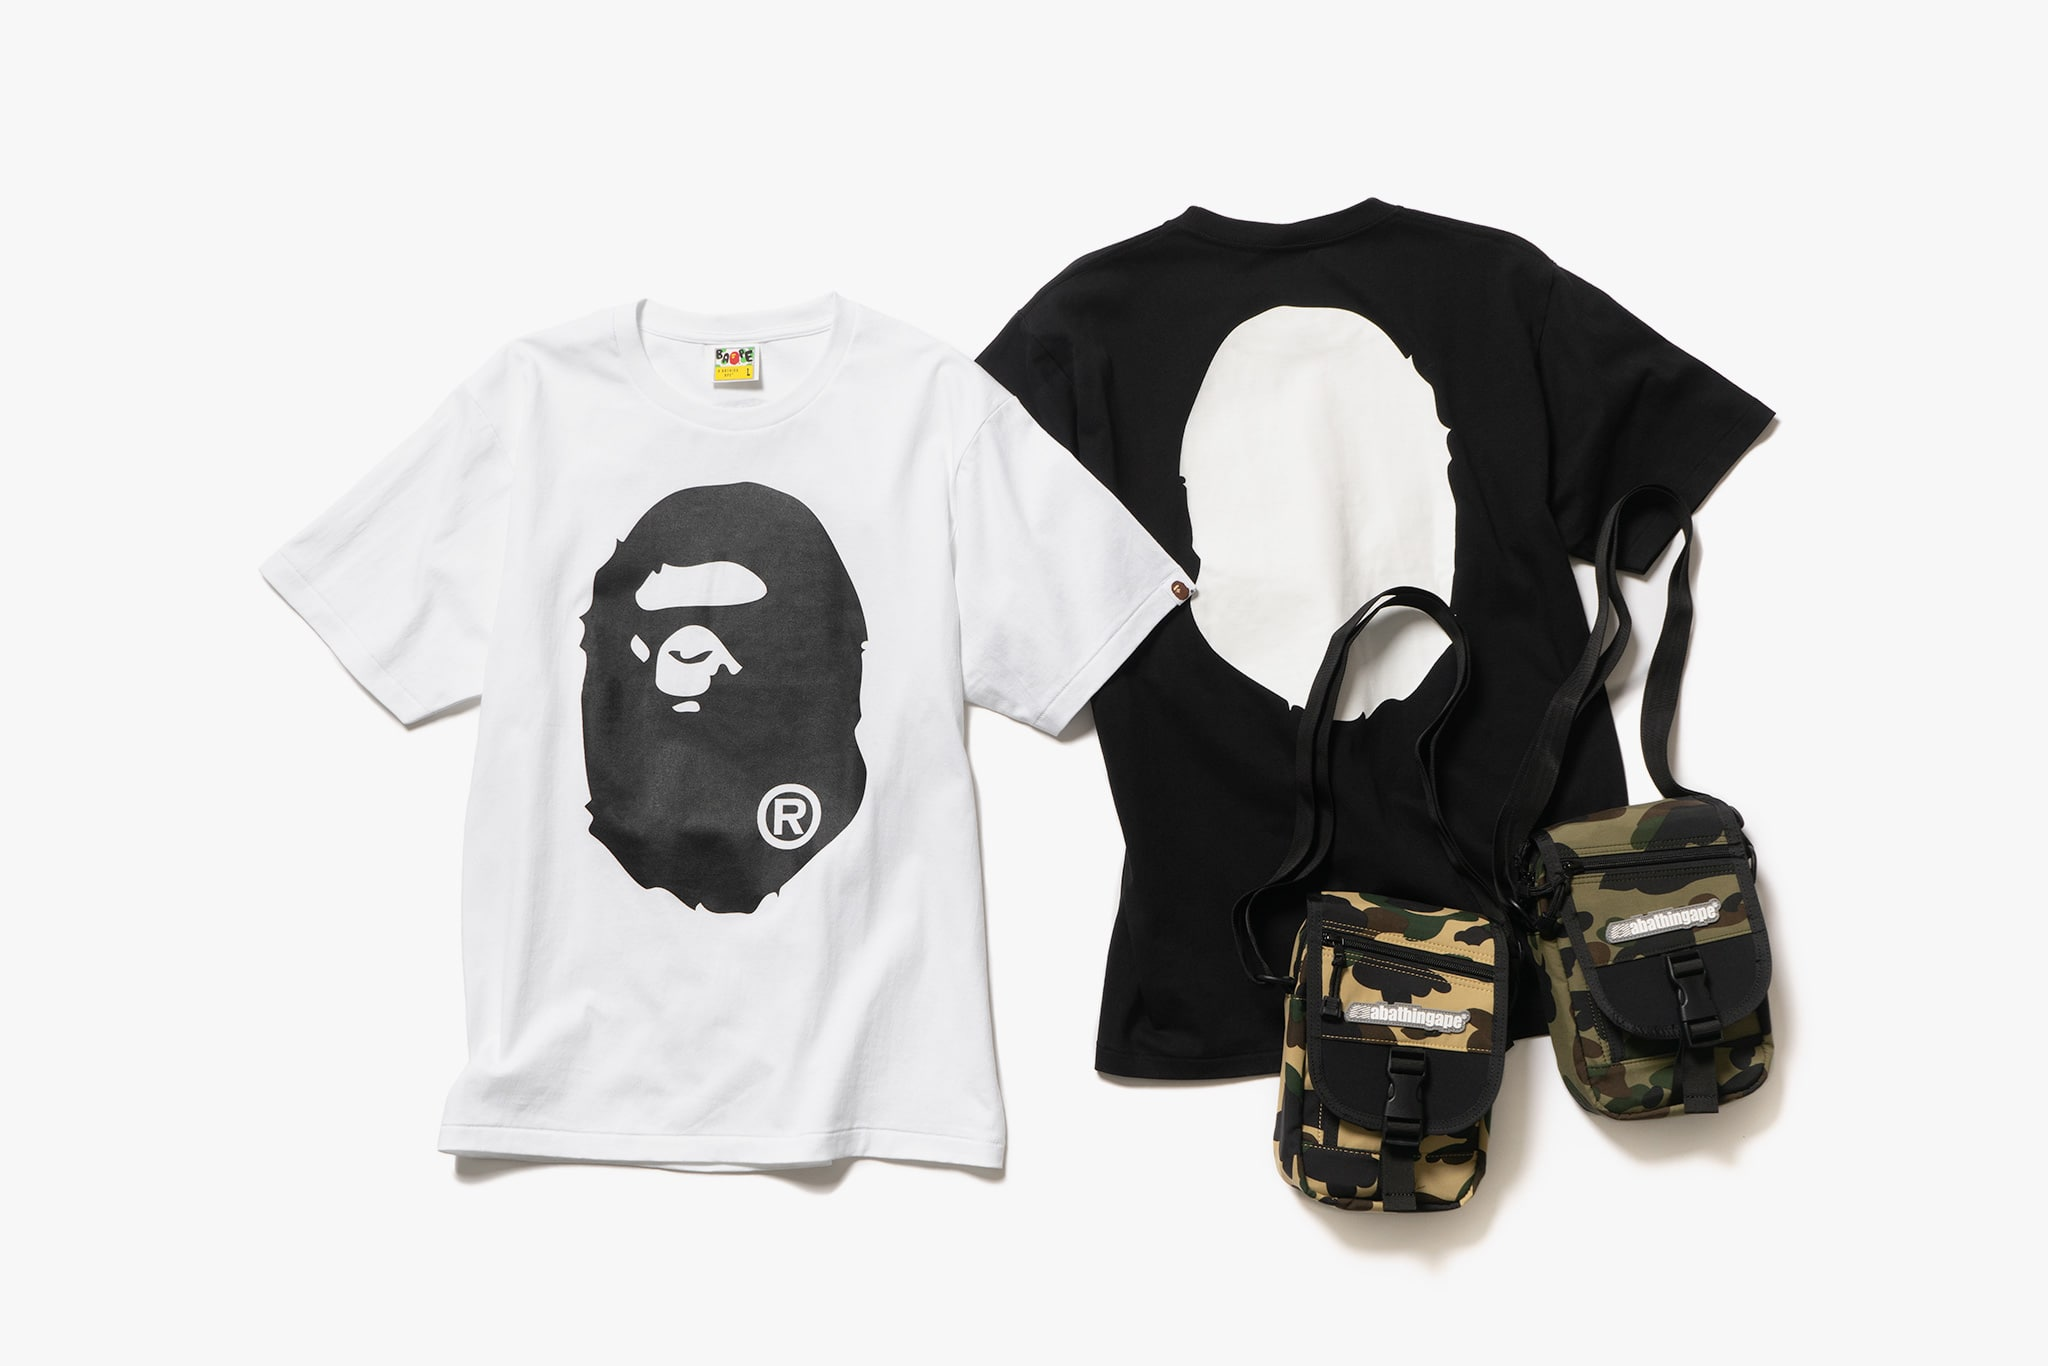 382851b3 ... Bathing Ape's FW18 collection features a wide range of t-shirts with  both screen printed and embroidered designs. Also included is the classic 1st  Camo ...